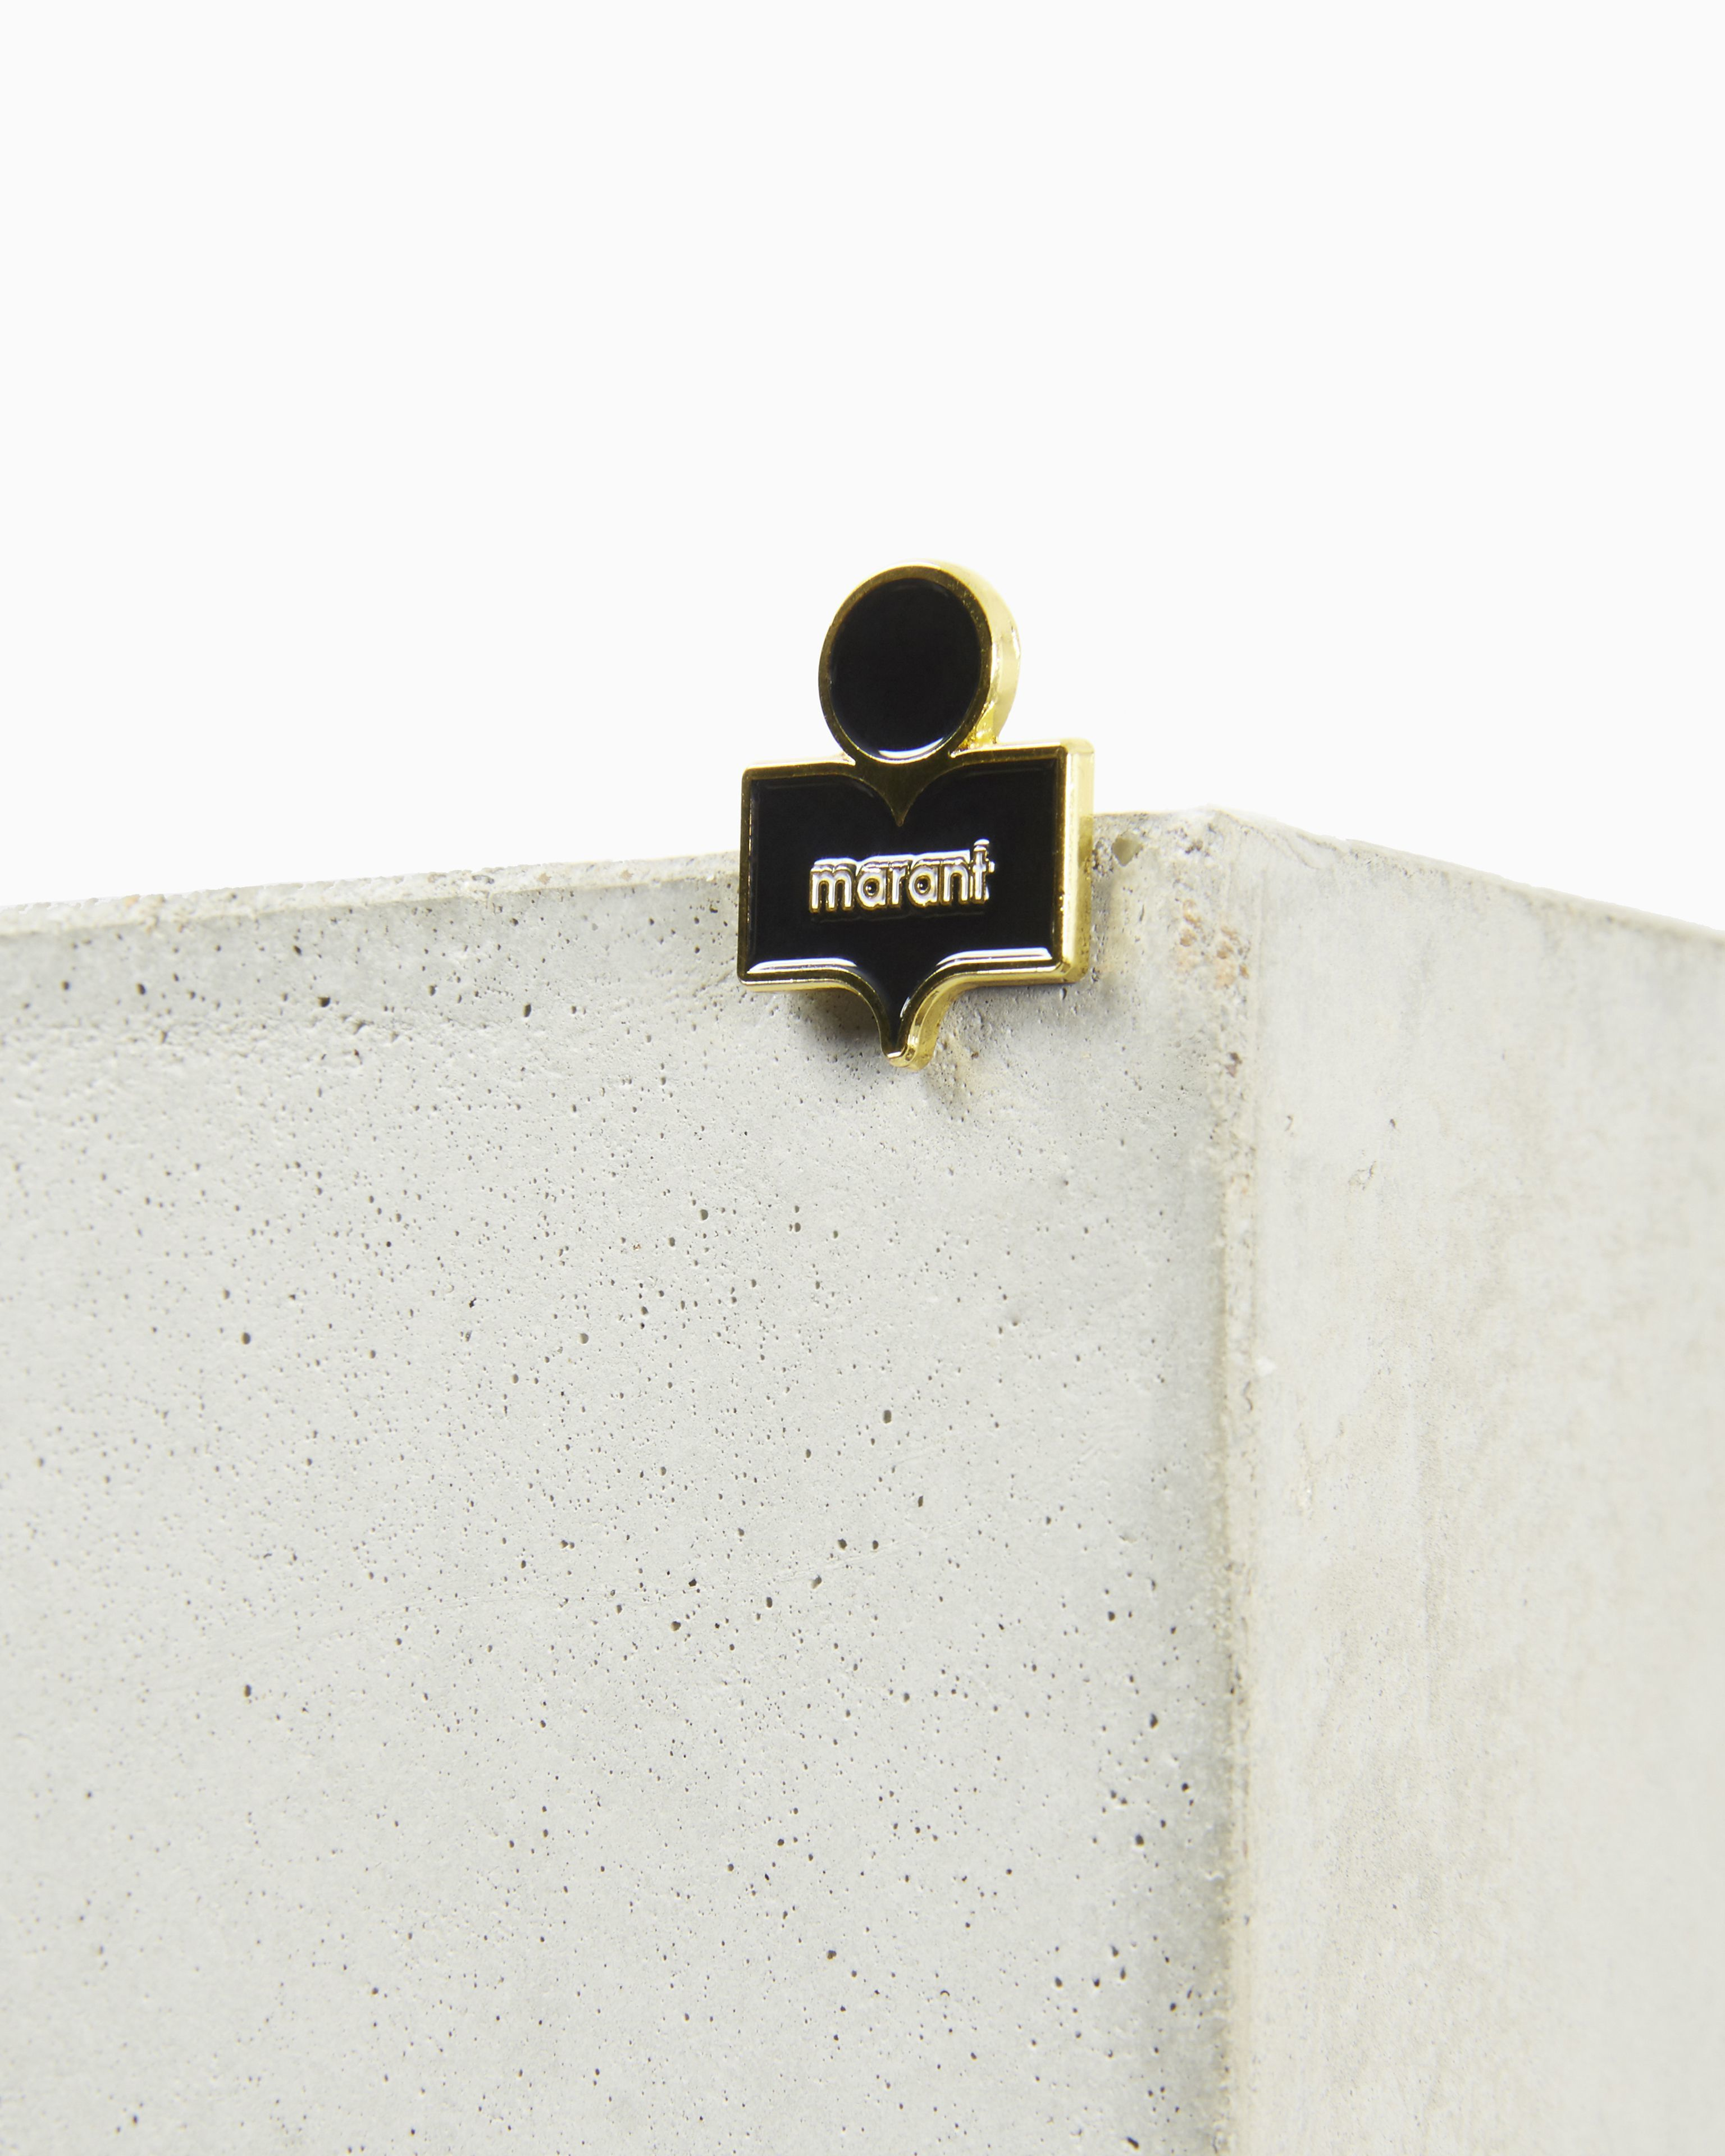 CRAZY LOGO pin brooch